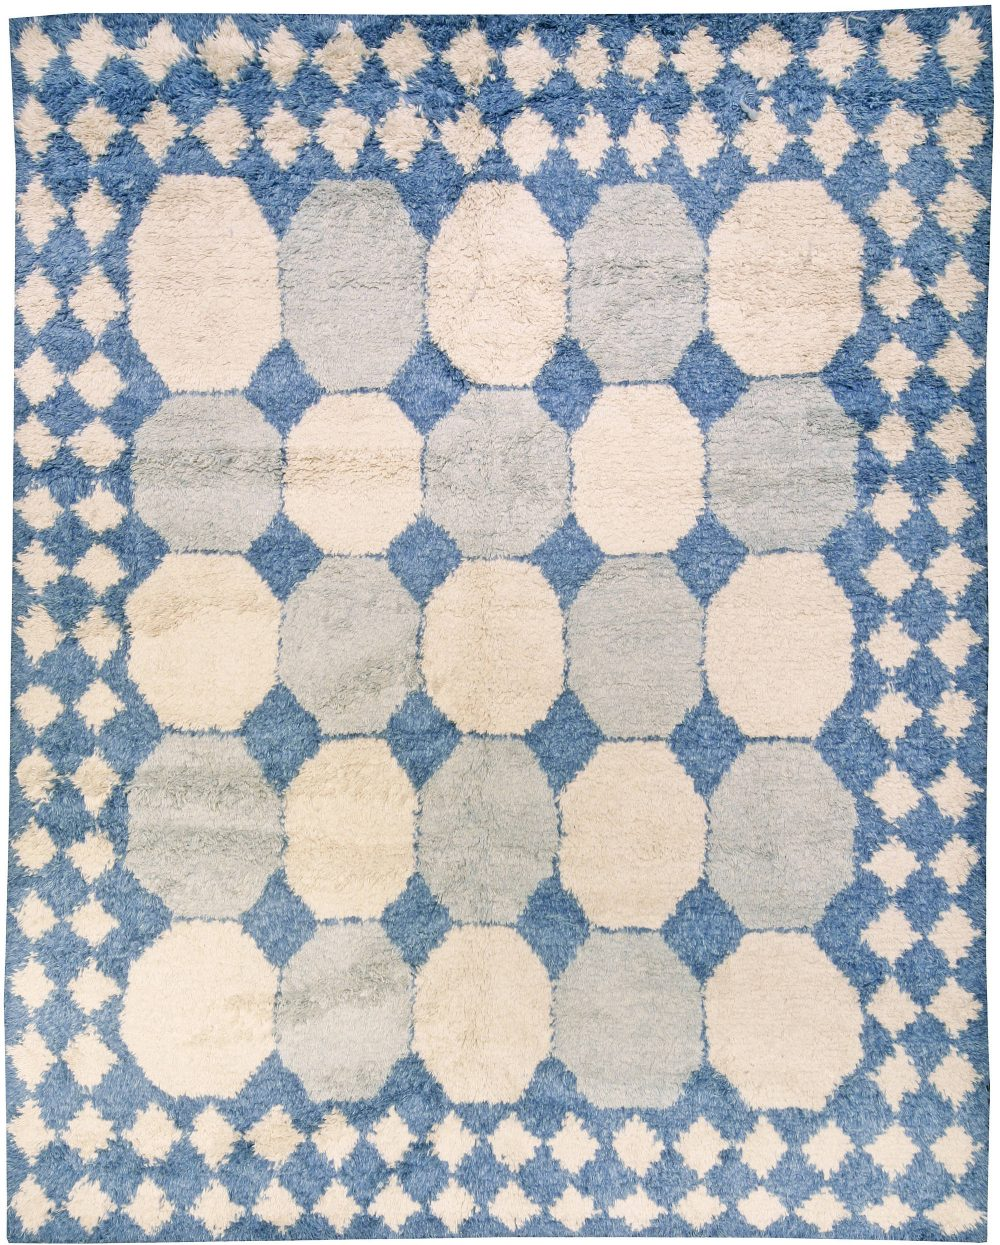 Contemporary Moroccan White and Blue Handwoven Wool Rug N10939